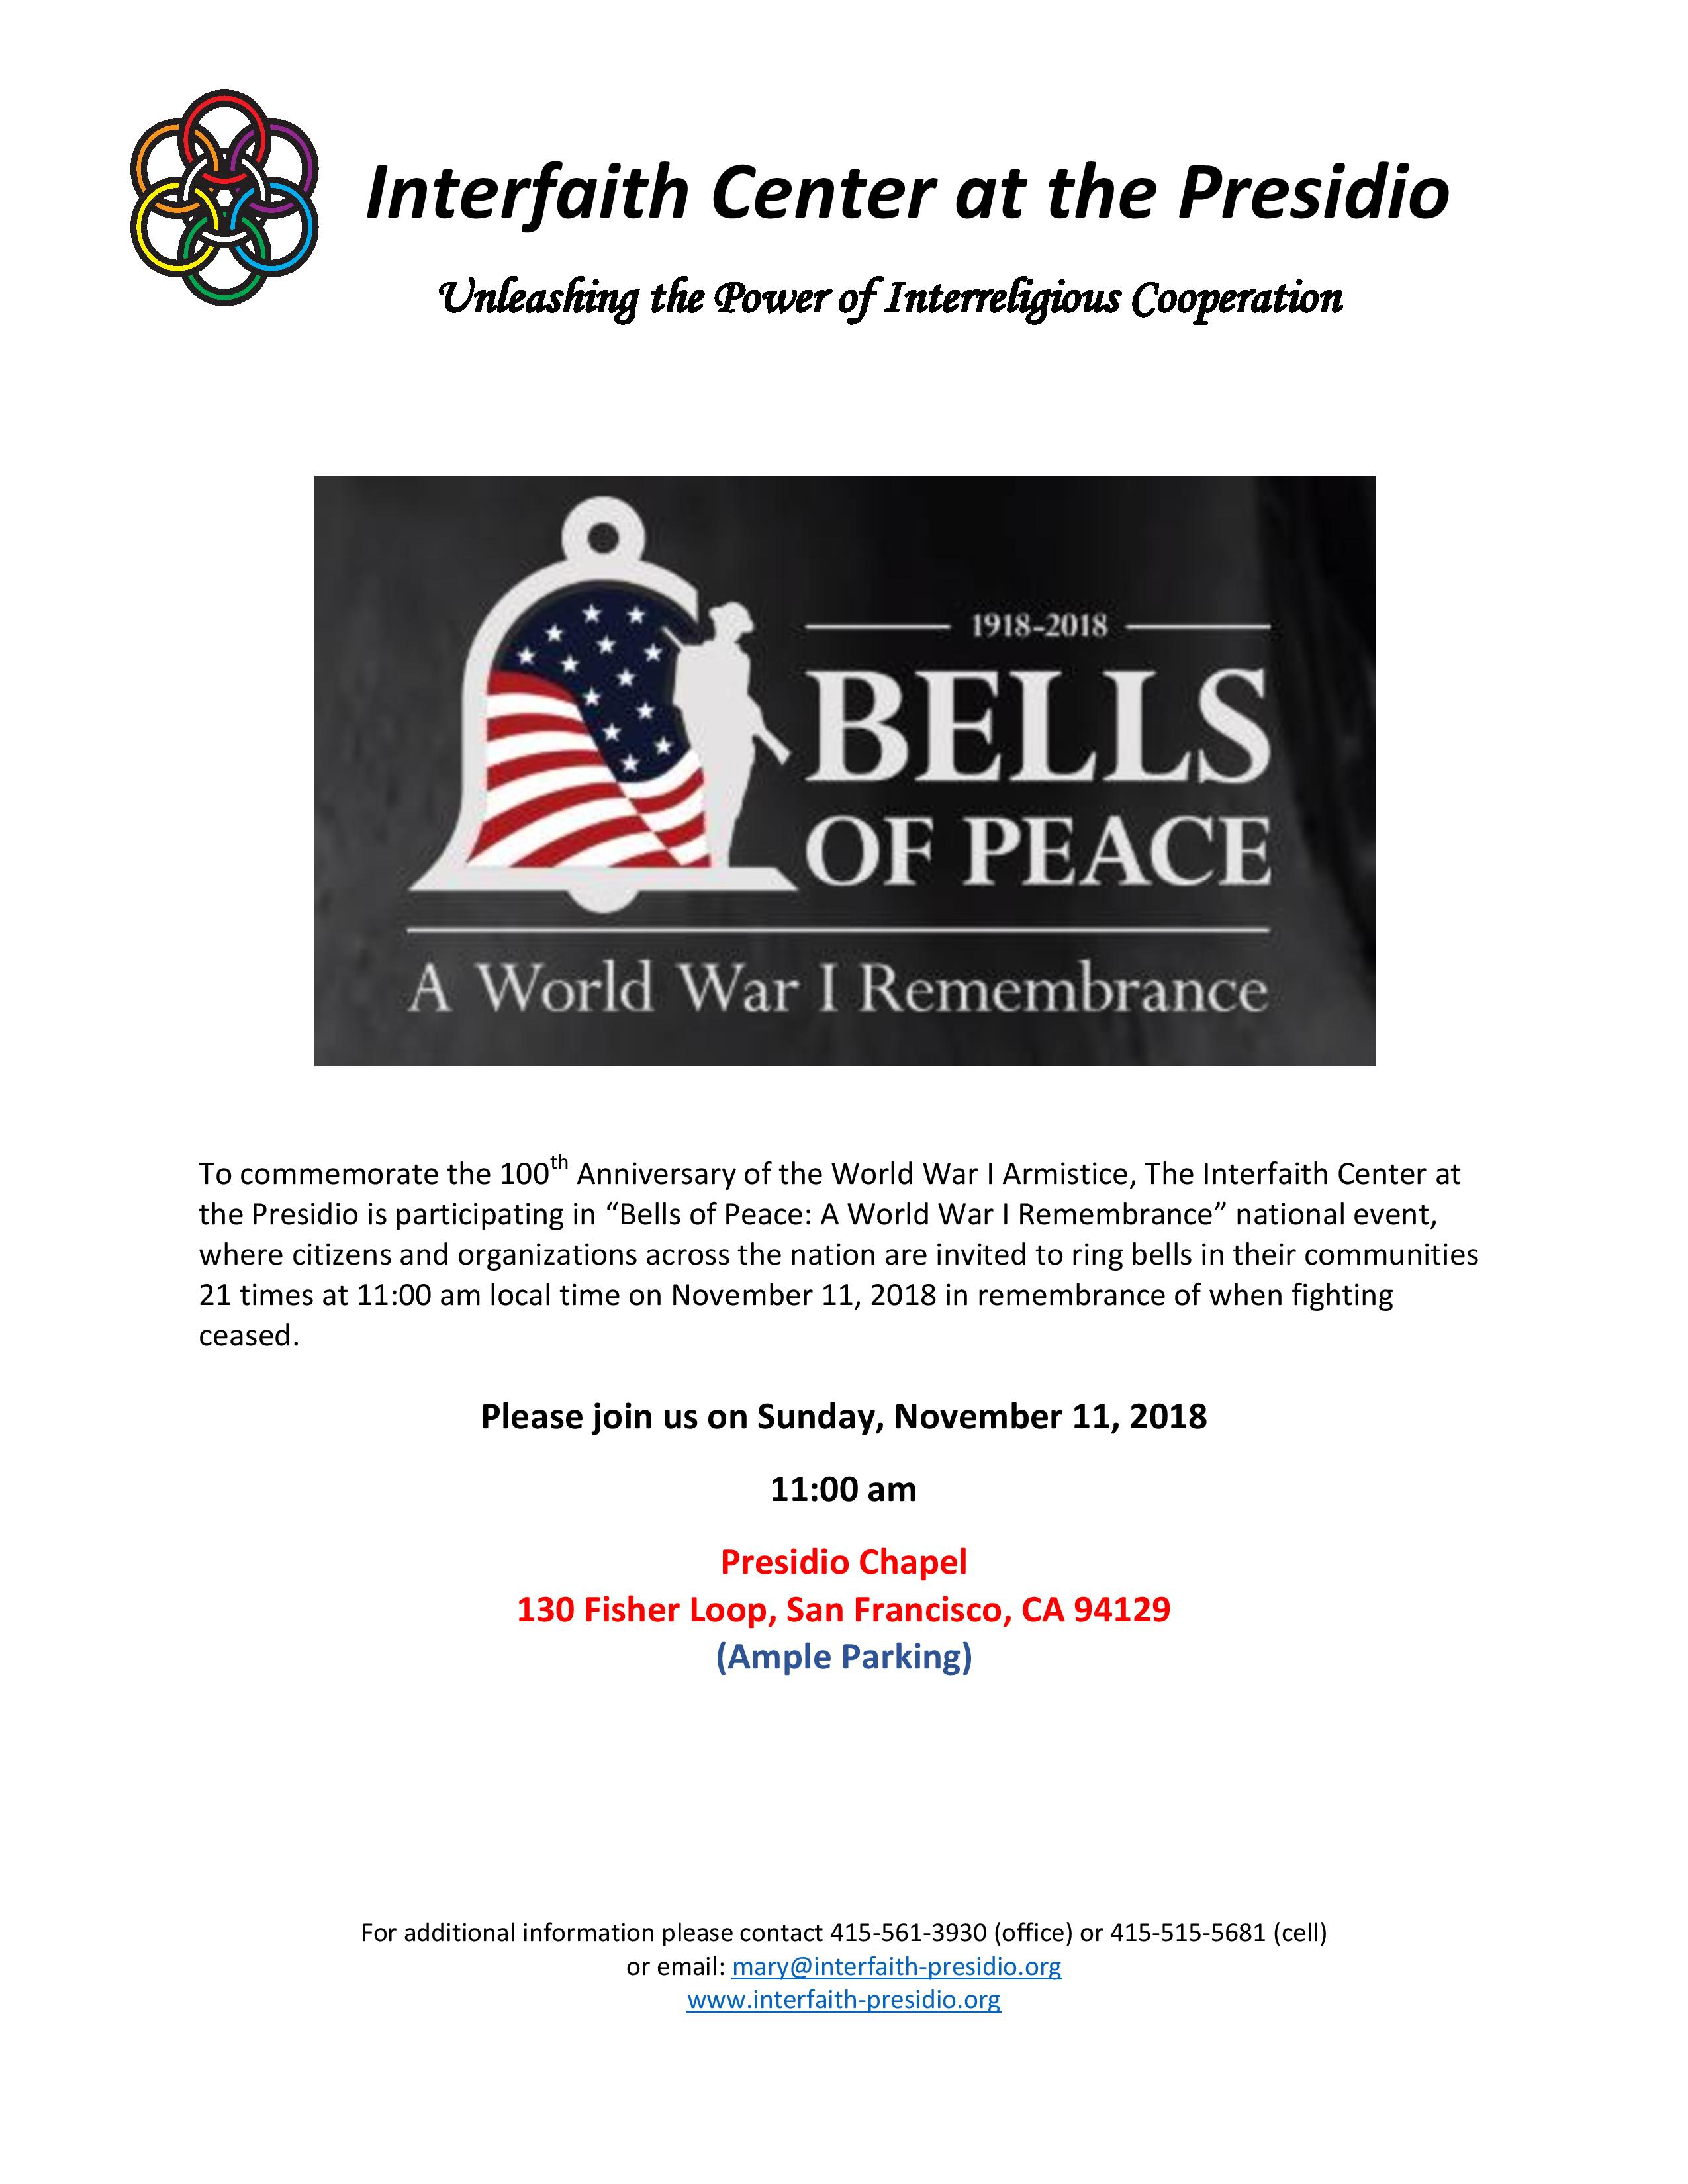 Bells of Peace - A World War I Remembrance | San Francisco